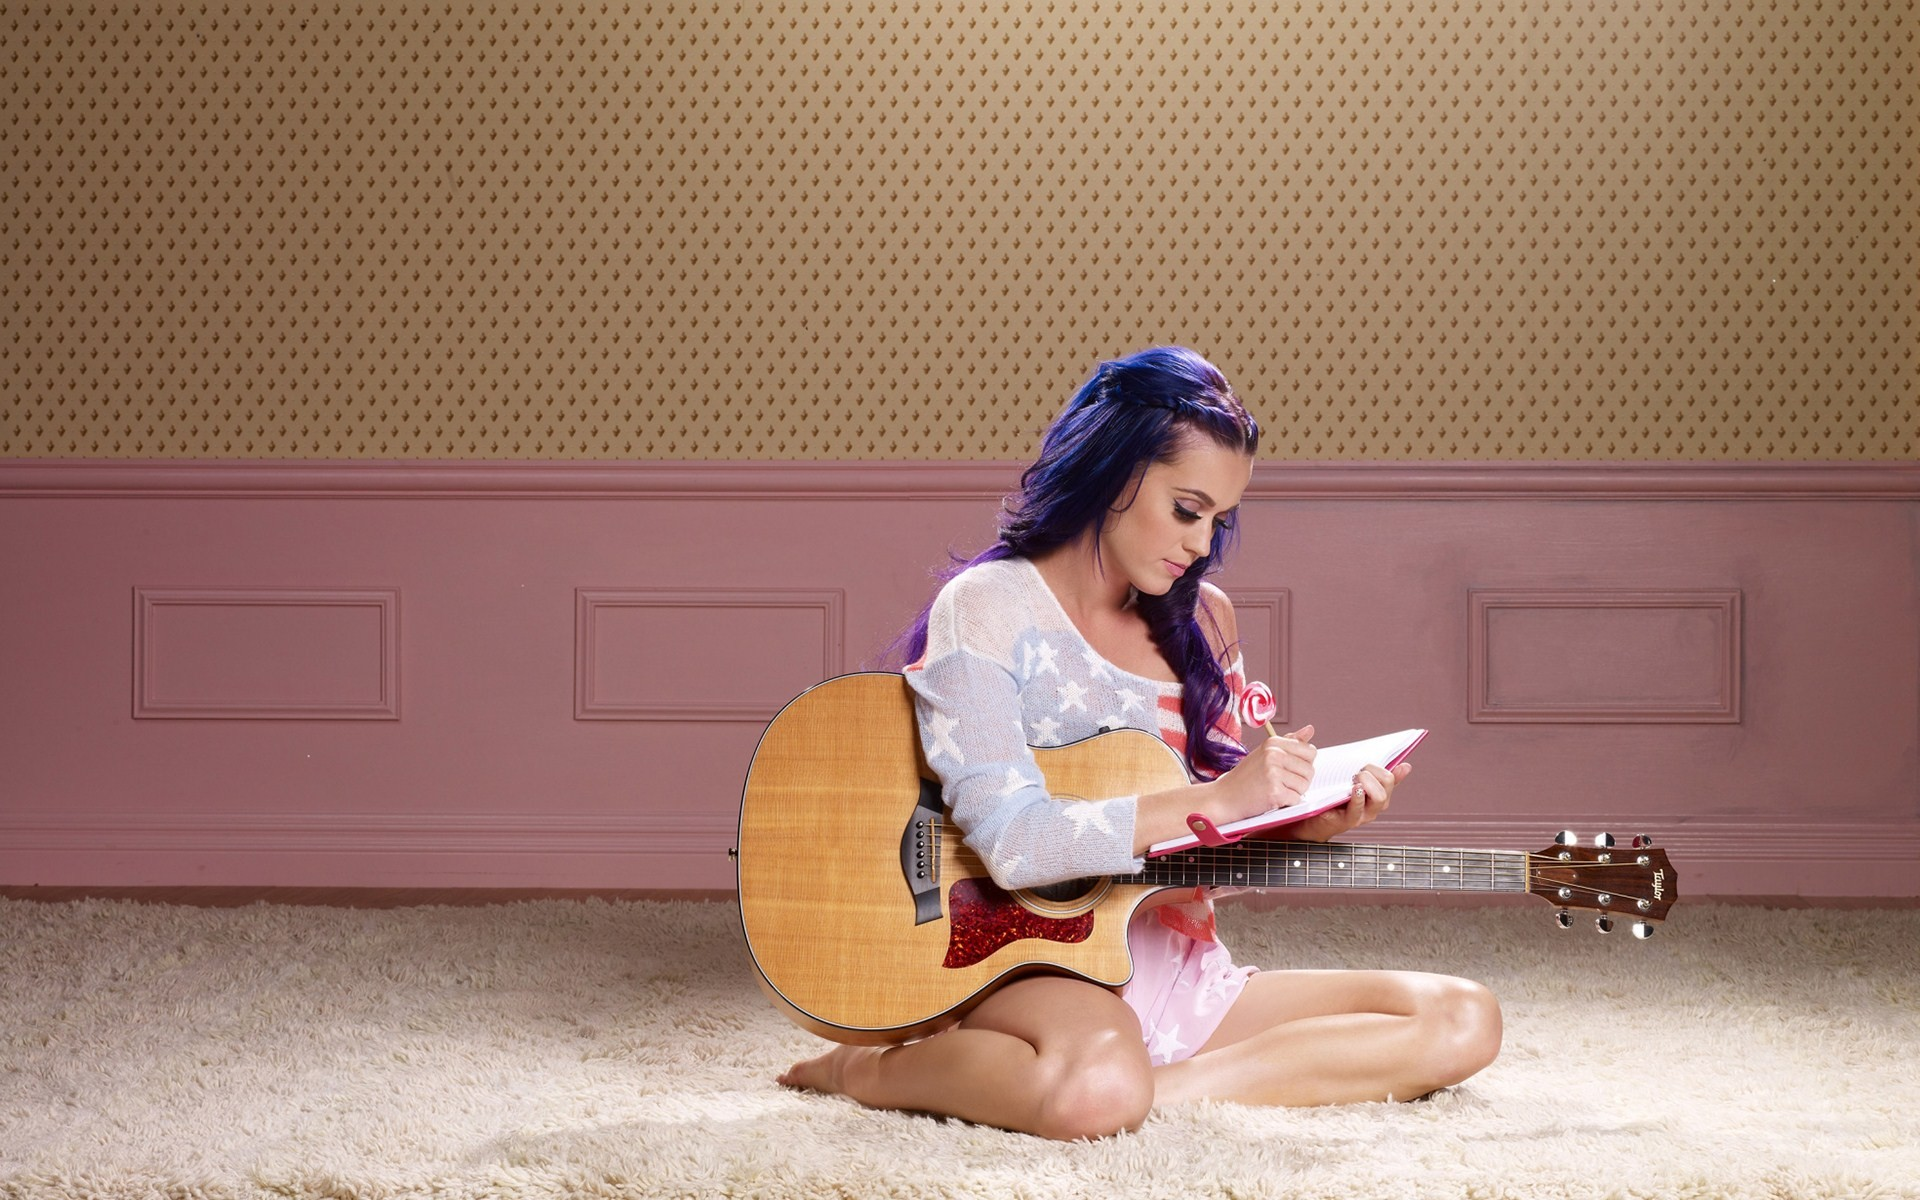 Katy Perry Part of Me 3588.89 Kb